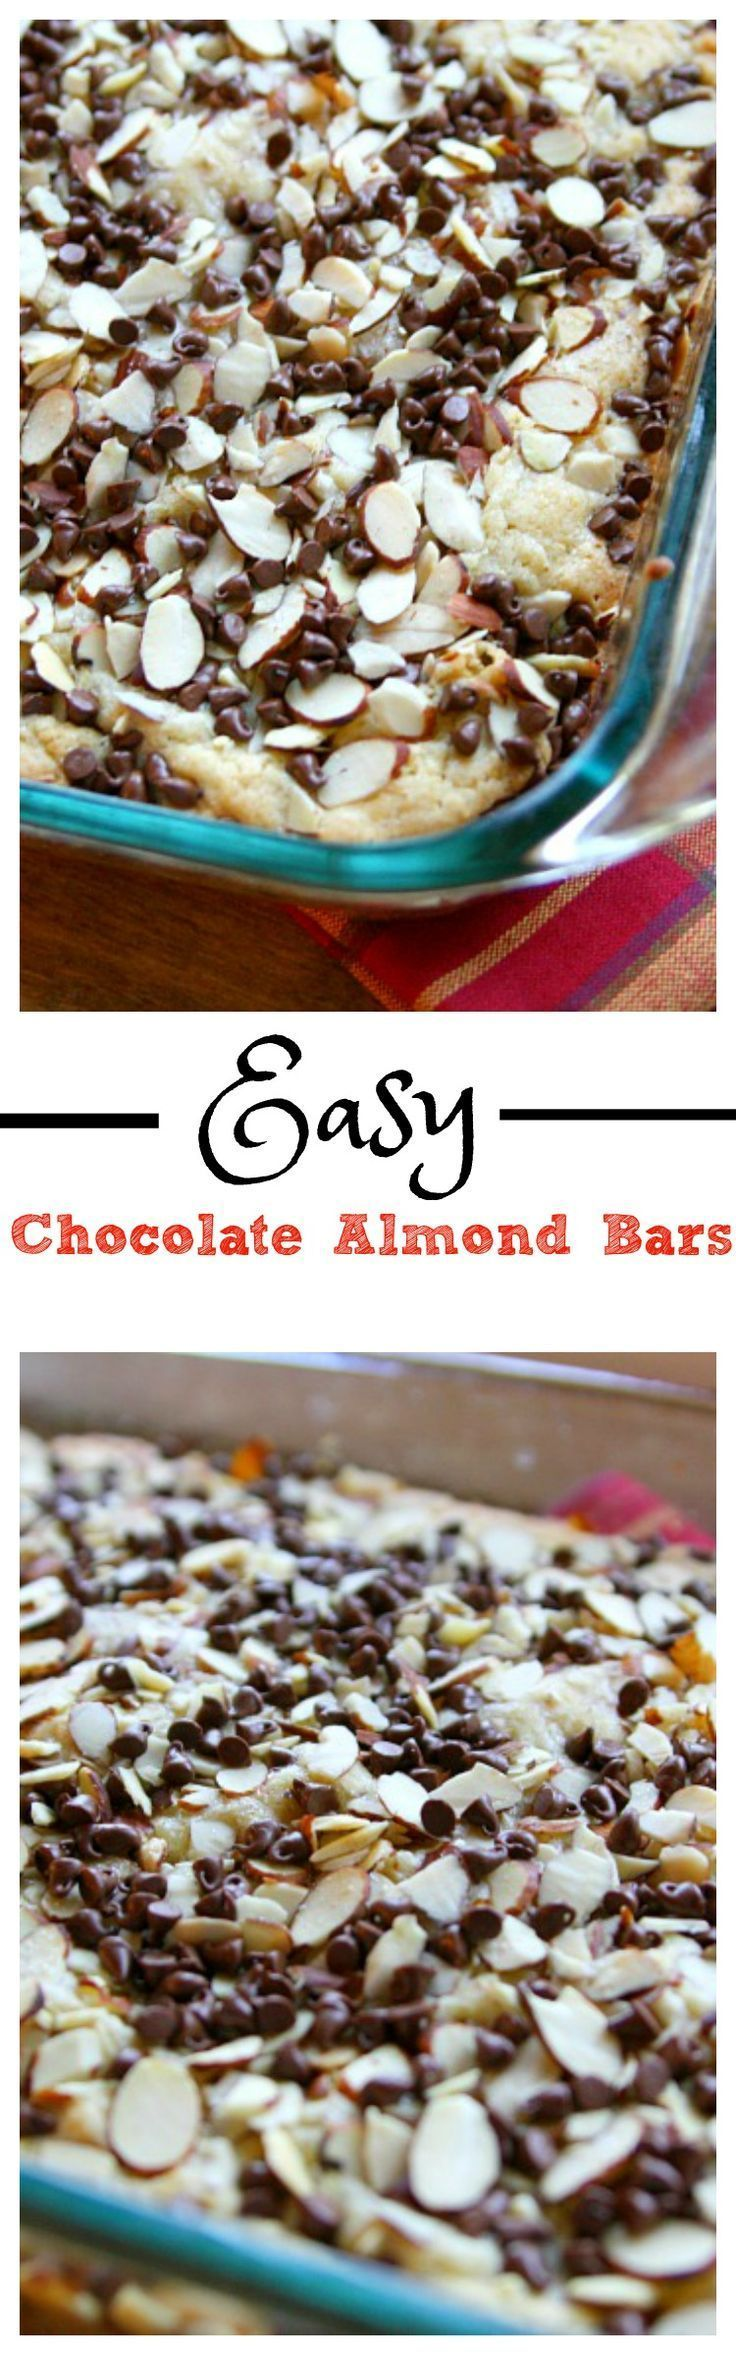 Easy Chocolate Almond Bars - The Mama Report | The Mama Report